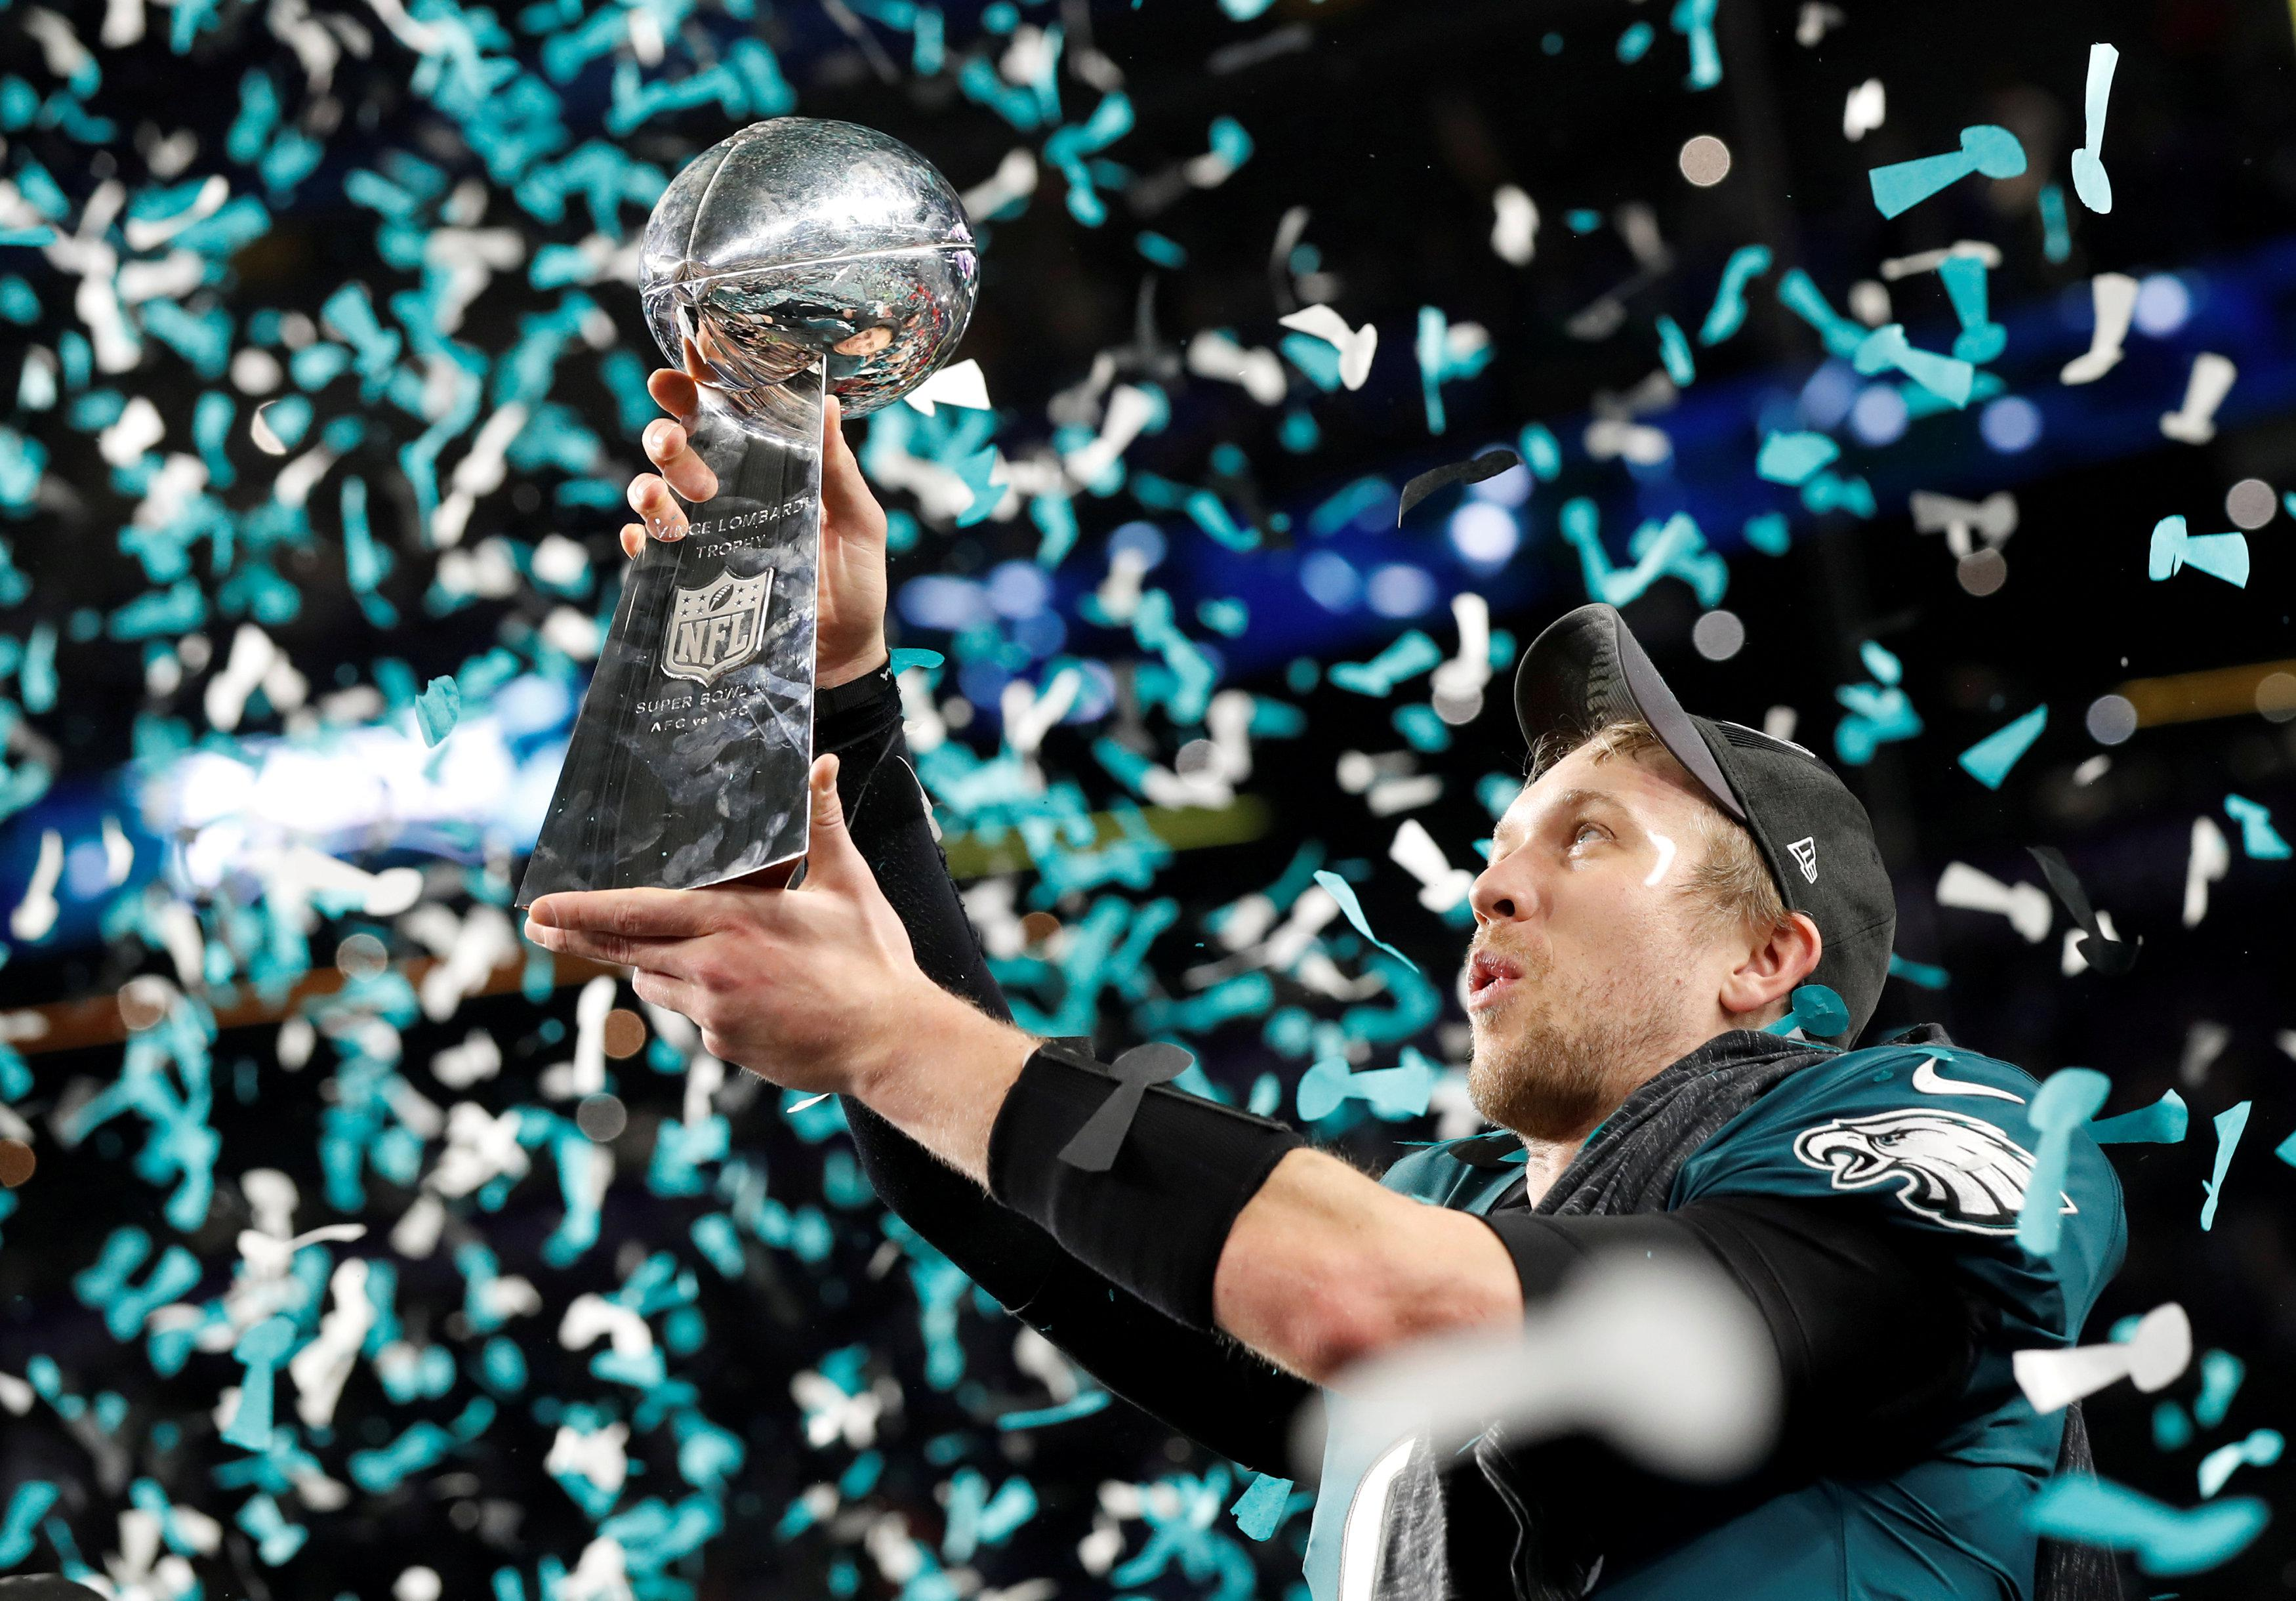 Foles lifts the Vince Lombardi trophy after the Eagles' Super Bowl win over the New England Patriots